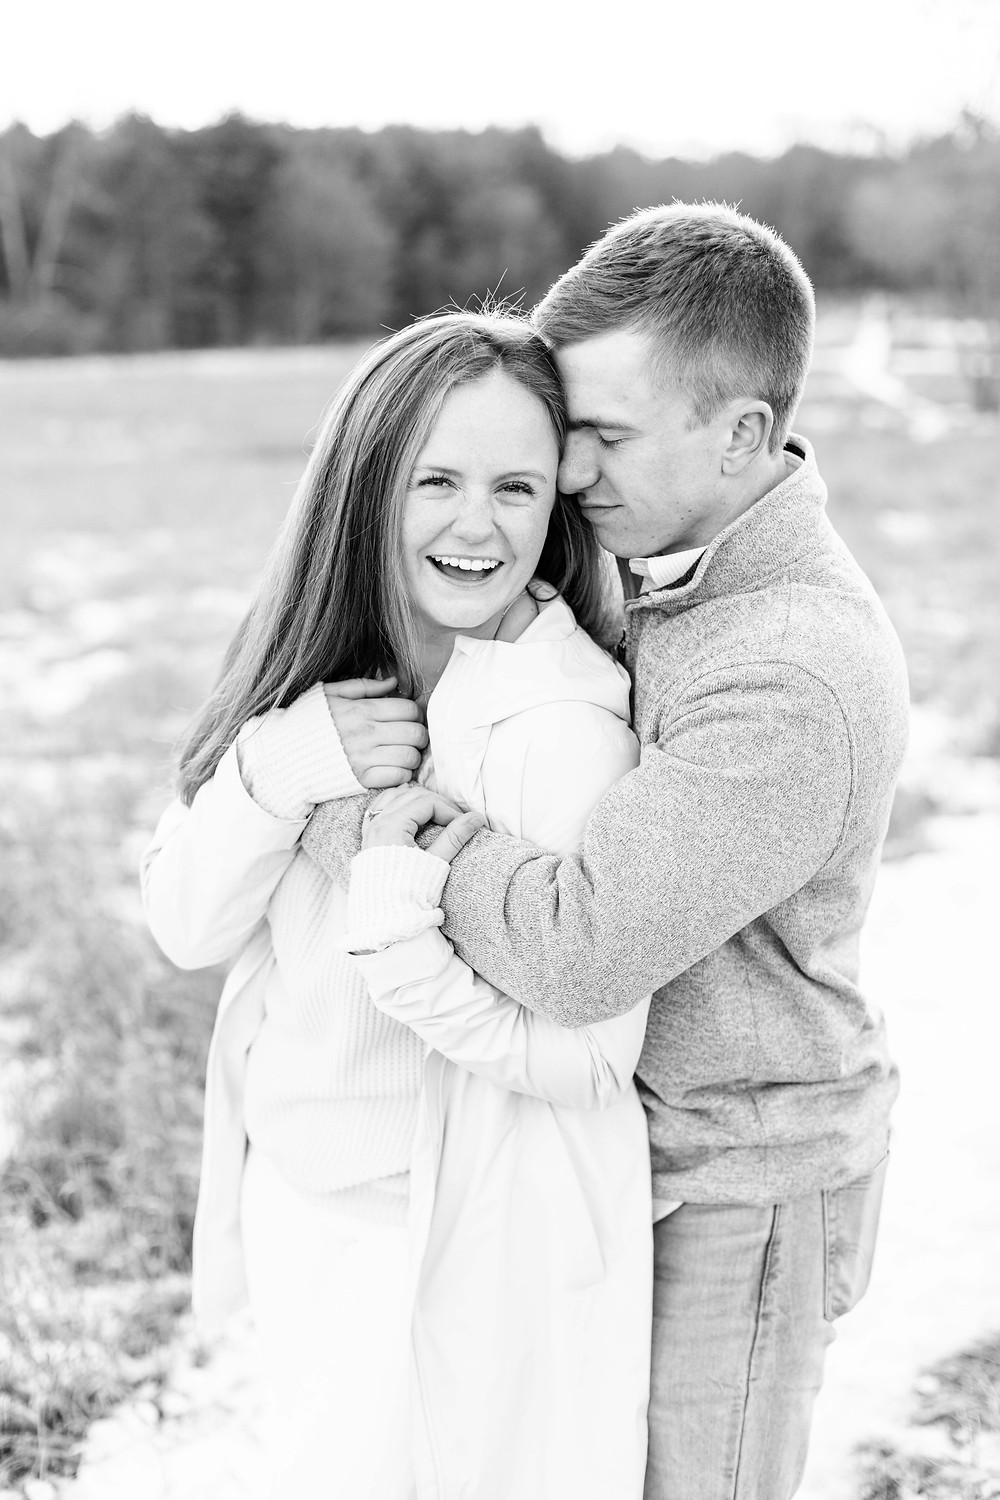 Josh and Andrea wedding photography husband and wife team michigan engagement session Al sabo land preserve couple laughing standing in snowy field